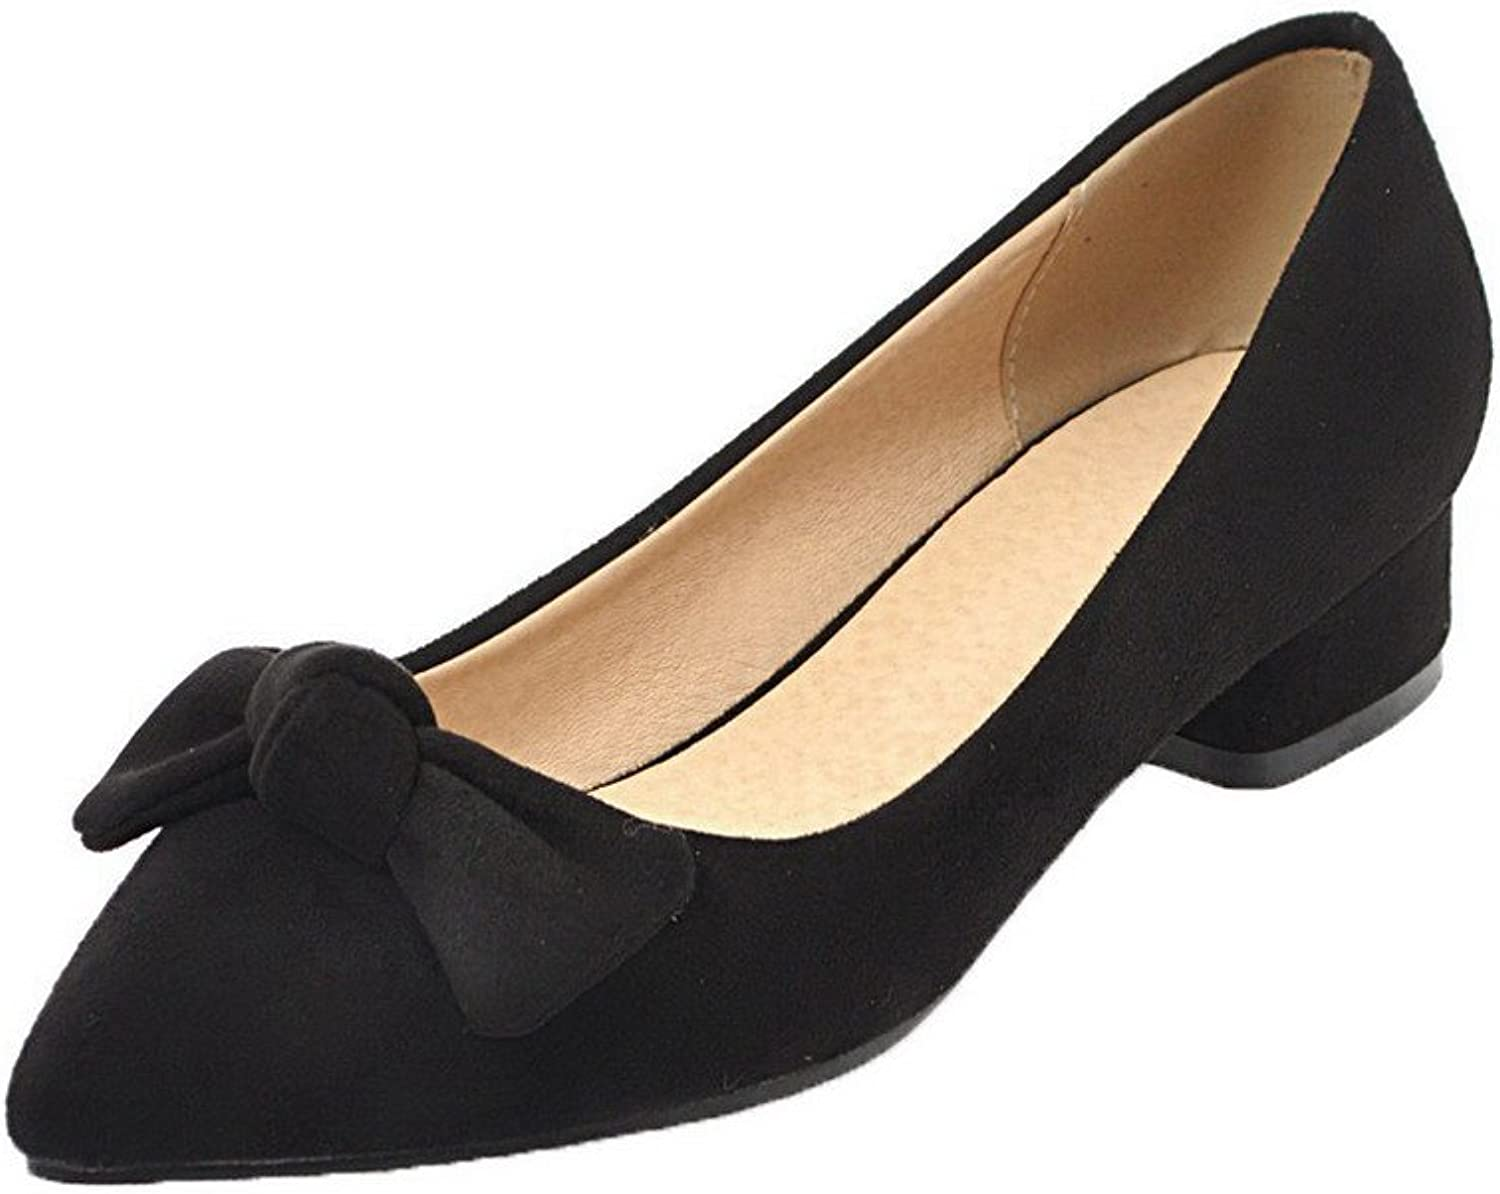 WeenFashion Women's Pull-On Closed-Toe Low-Heels Frosted Solid Pumps-shoes